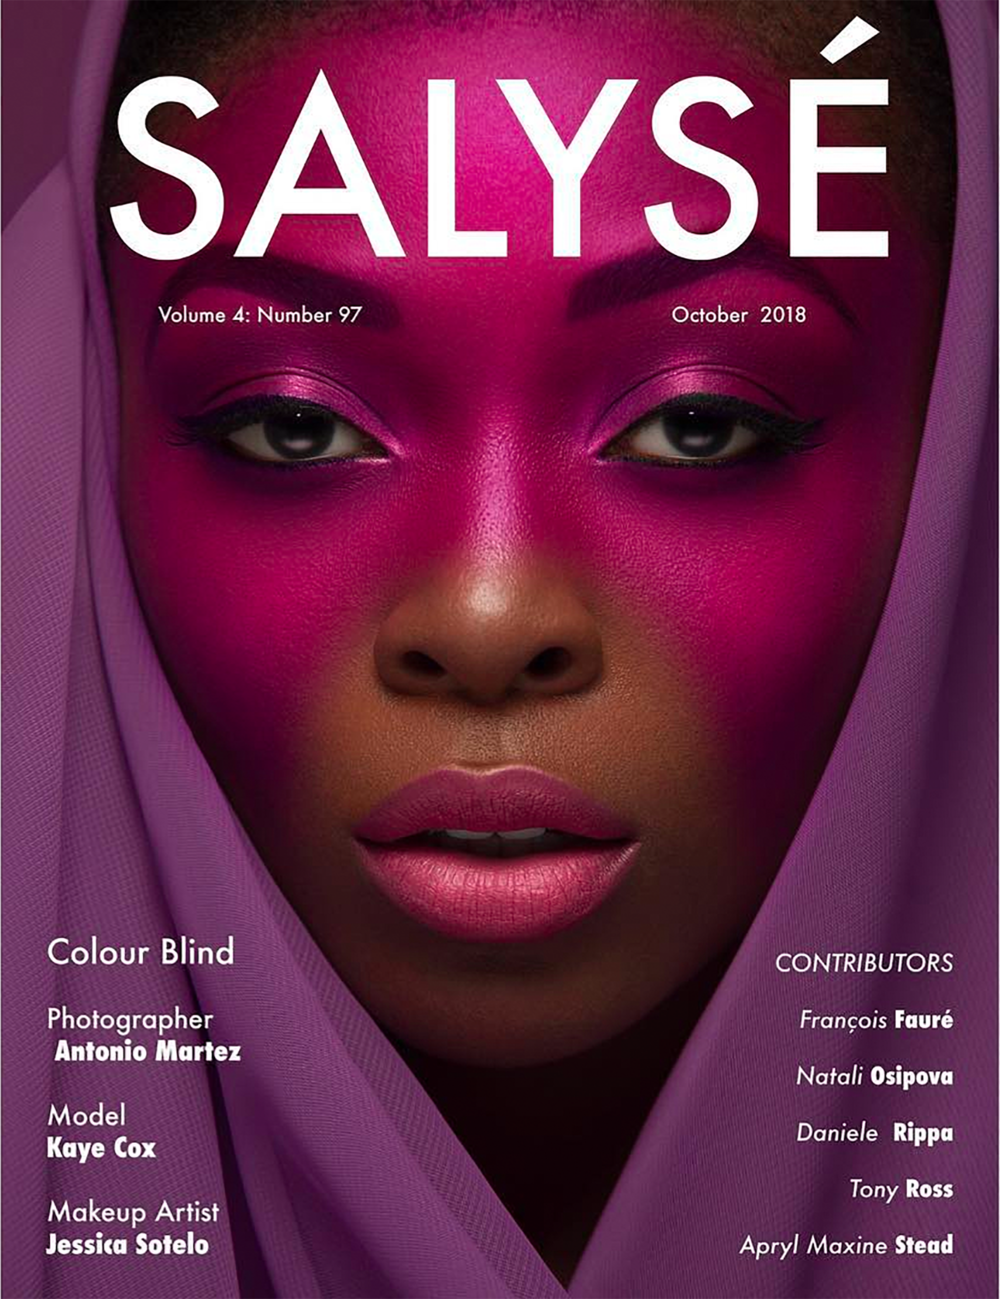 Salysé Magazine - October 2018 Cover by Antonio Martez